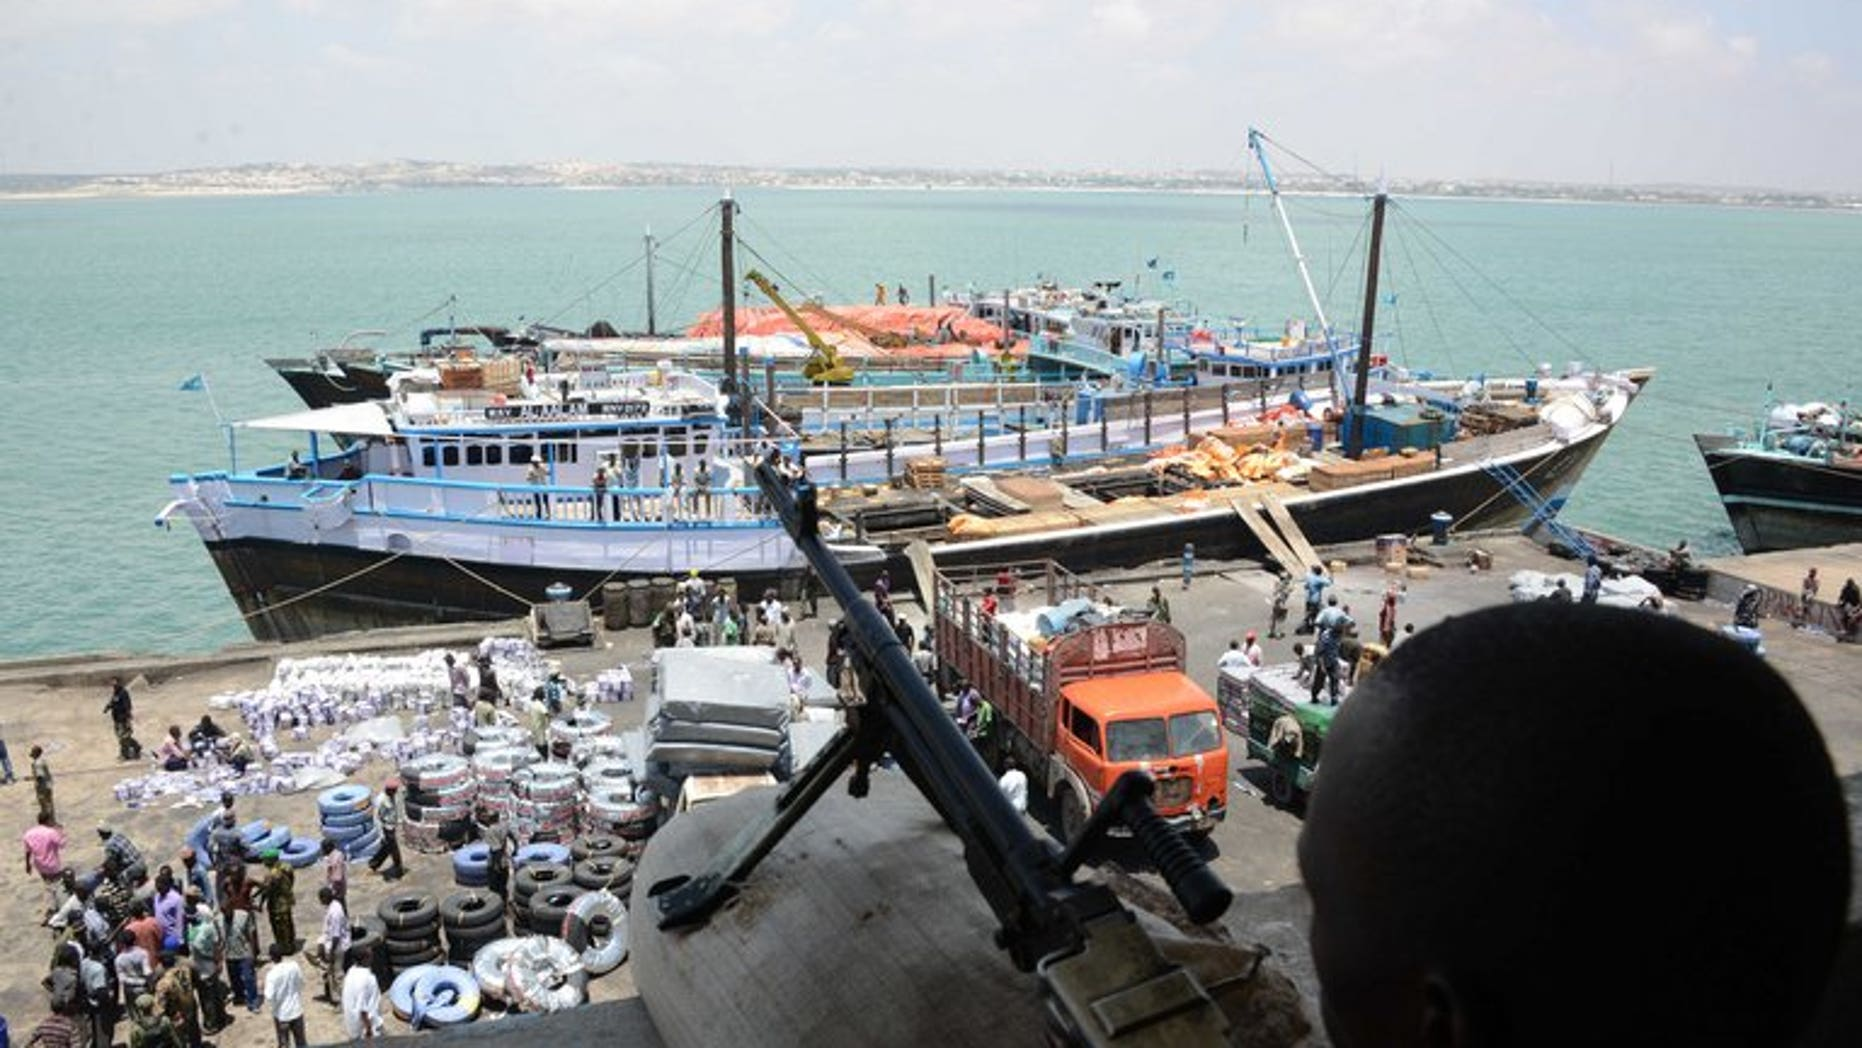 More than 70 killed in warlords' battle for Somali port: UN